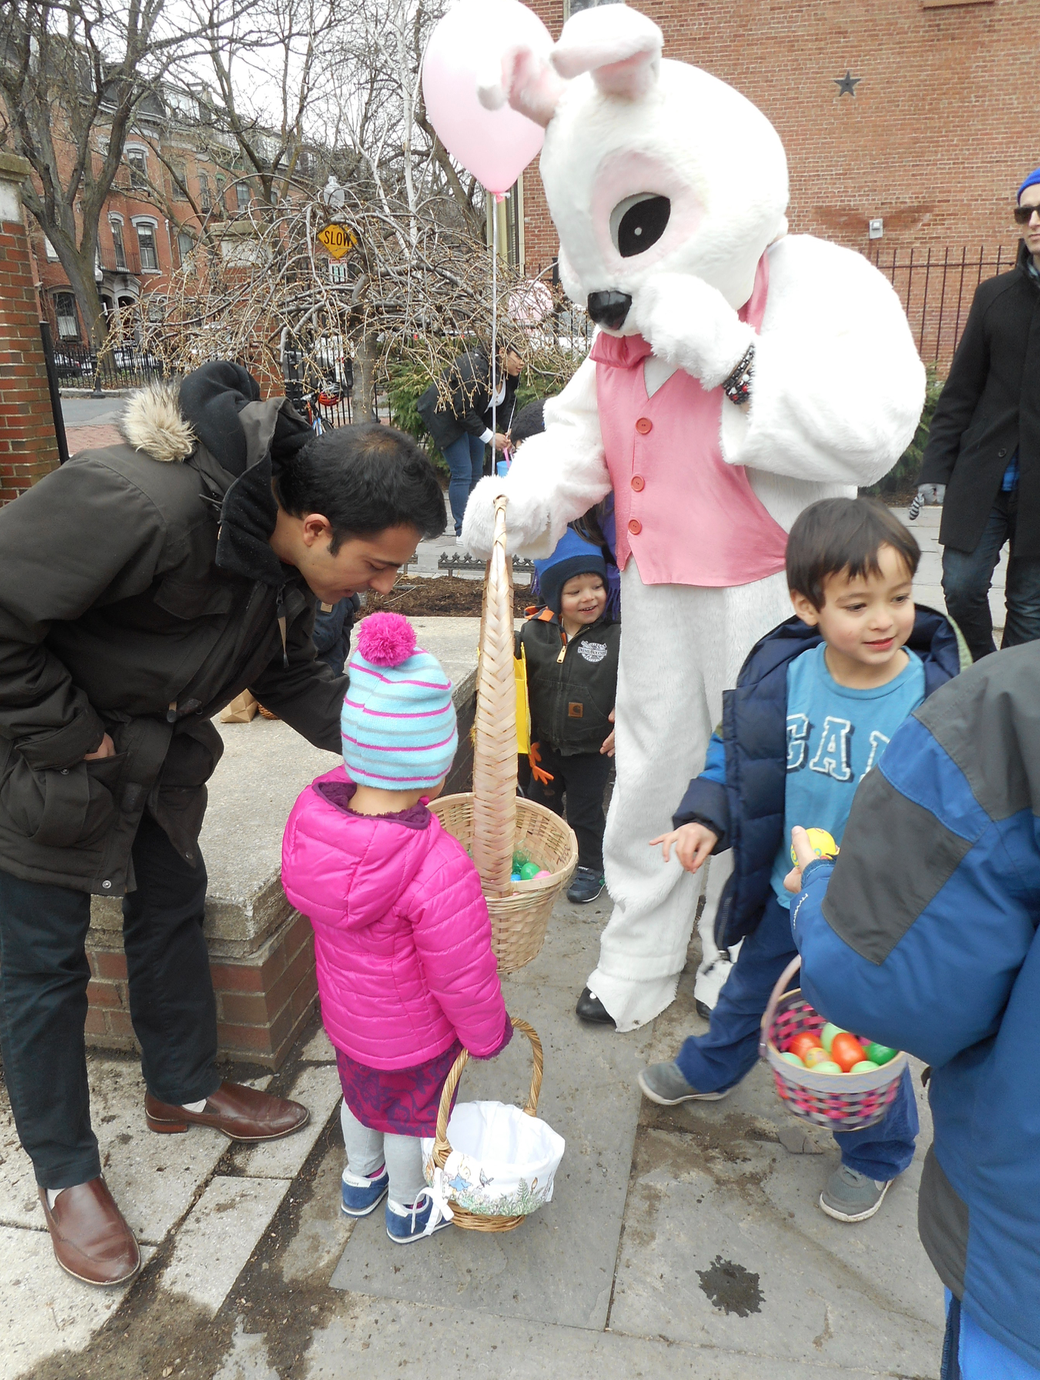 The first outdoor event of spring: the FOSEL Easter Egg Hunt in Library Park